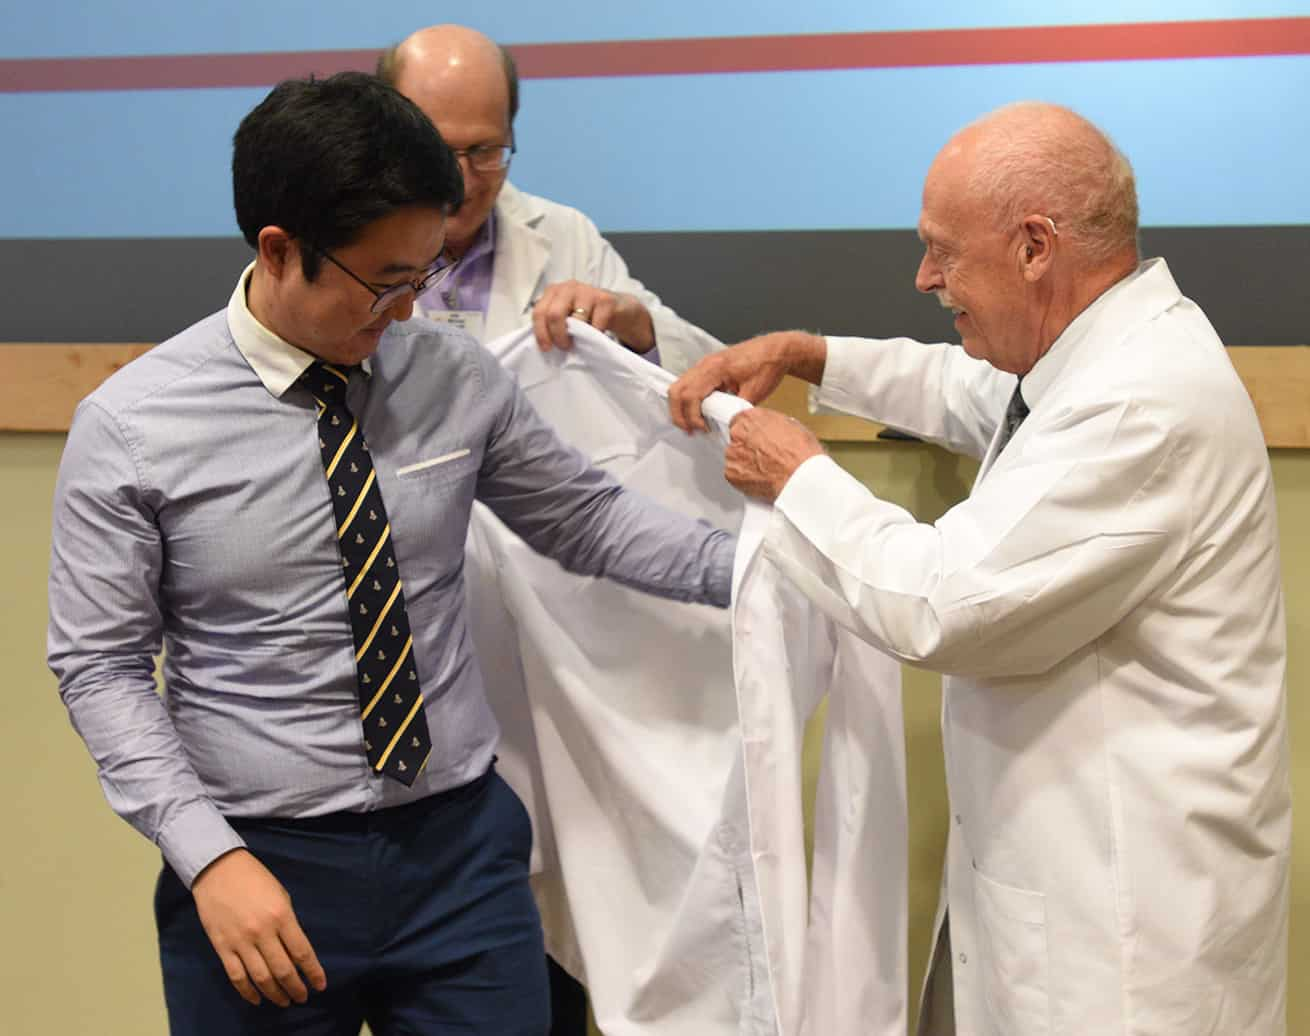 Student helped into white coat